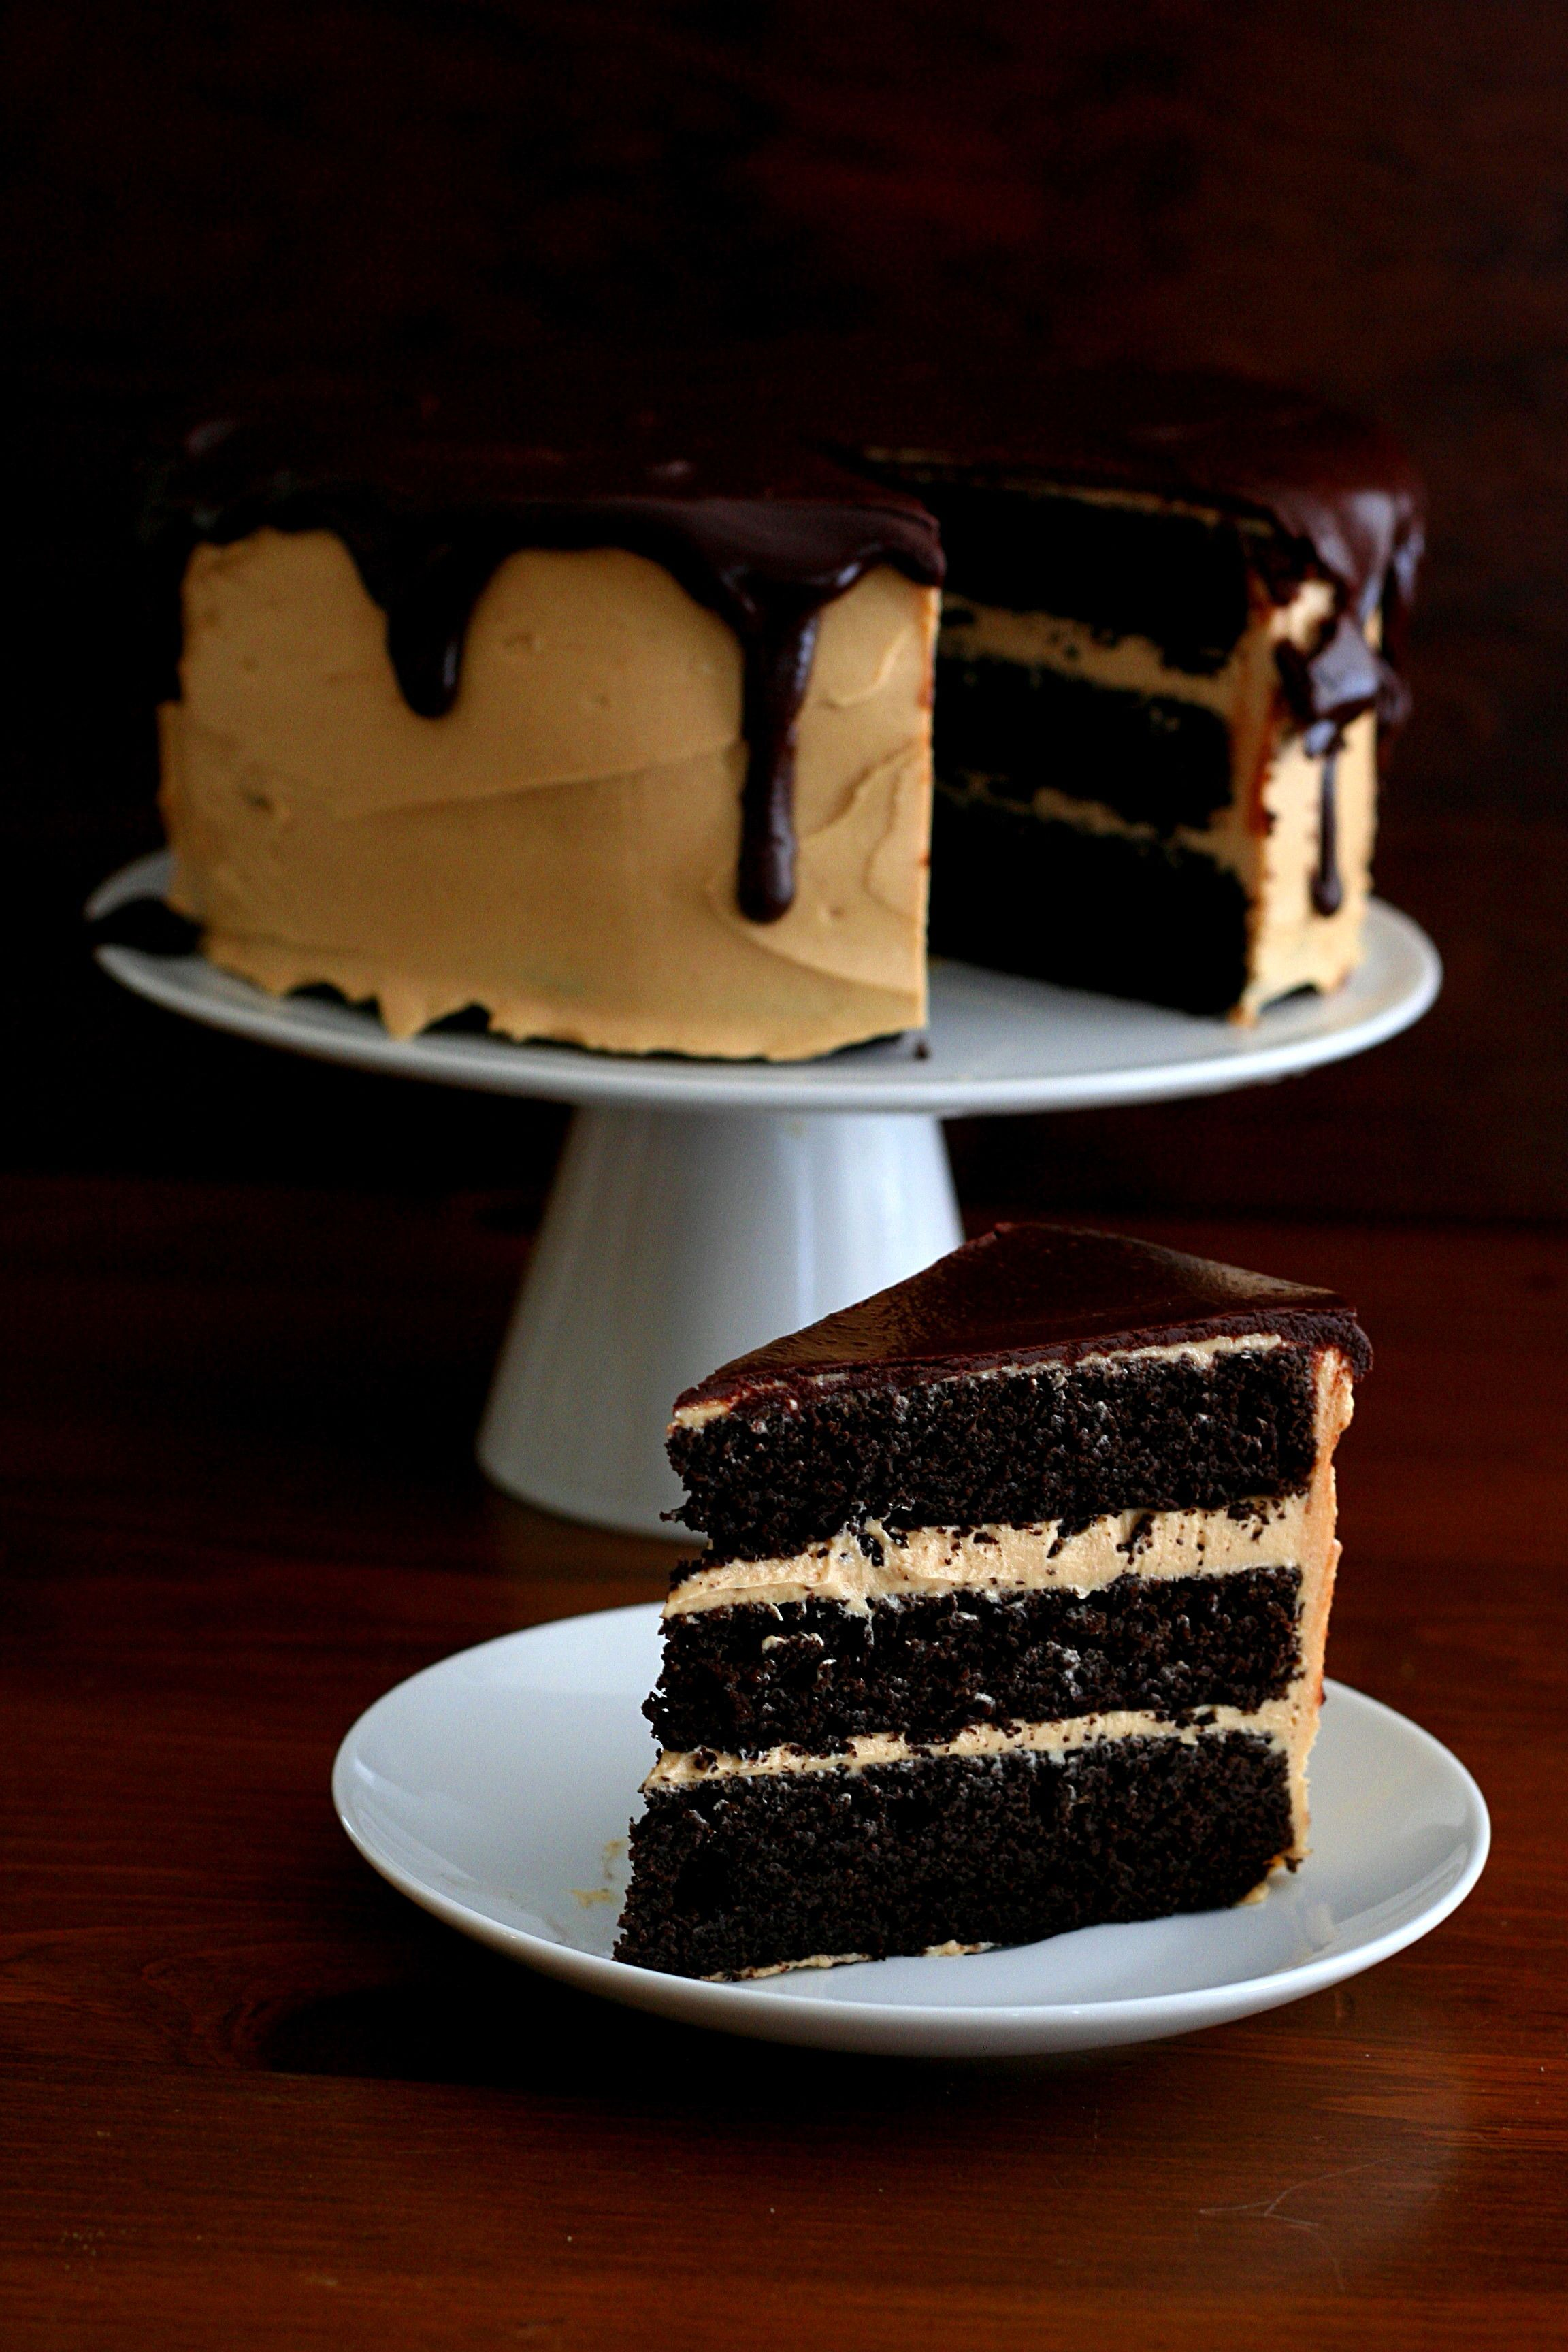 Dark Chocolate Peanut Butter Layer Cake, made with Honeyville Blanched Almond Flour - Submitted by Carolyn